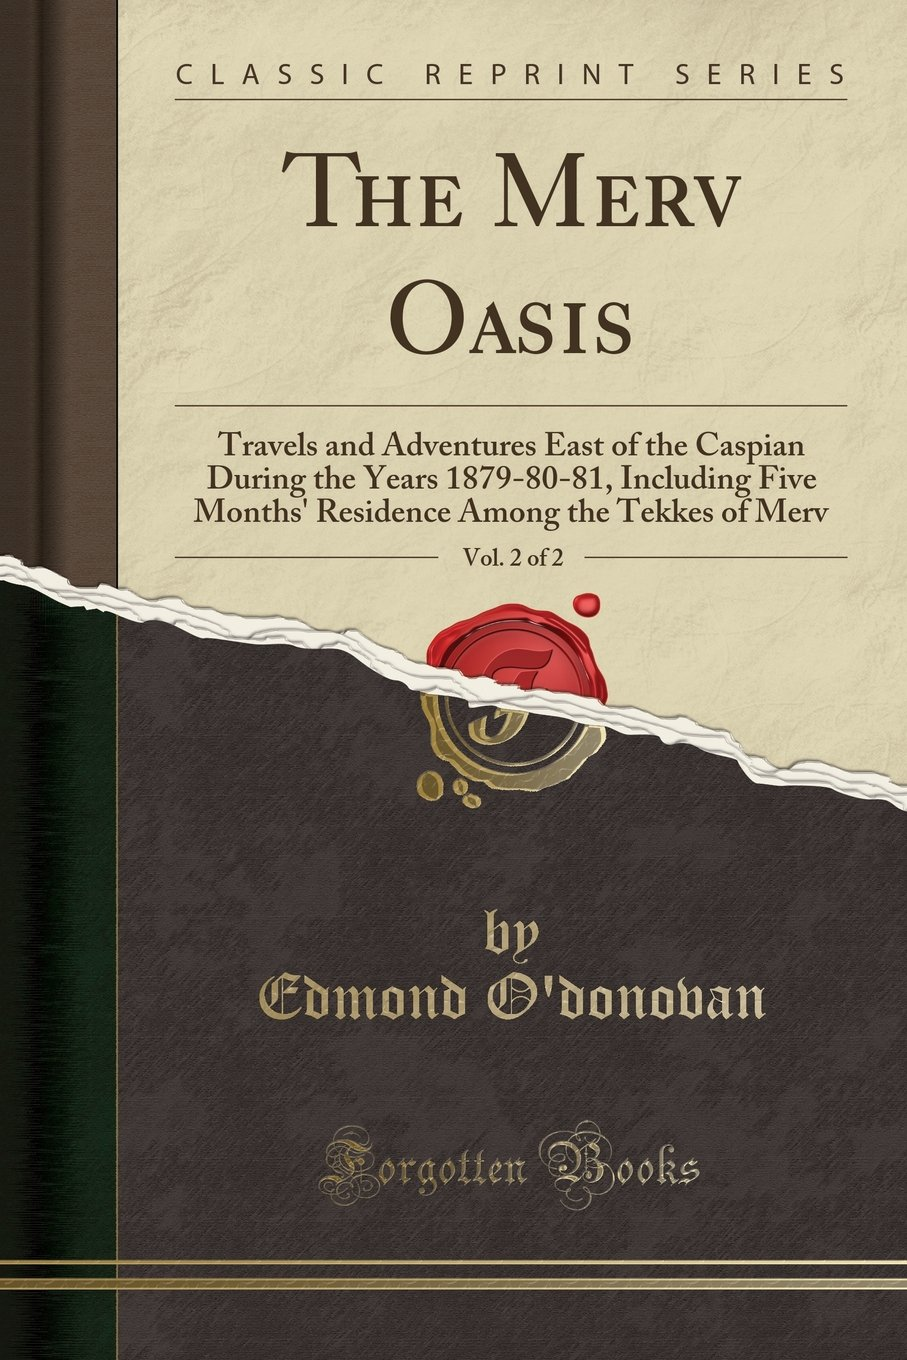 Download The Merv Oasis, Vol. 2 of 2: Travels and Adventures East of the Caspian During the Years 1879-80-81, Including Five Months' Residence Among the Tekkes of Merv (Classic Reprint) pdf epub